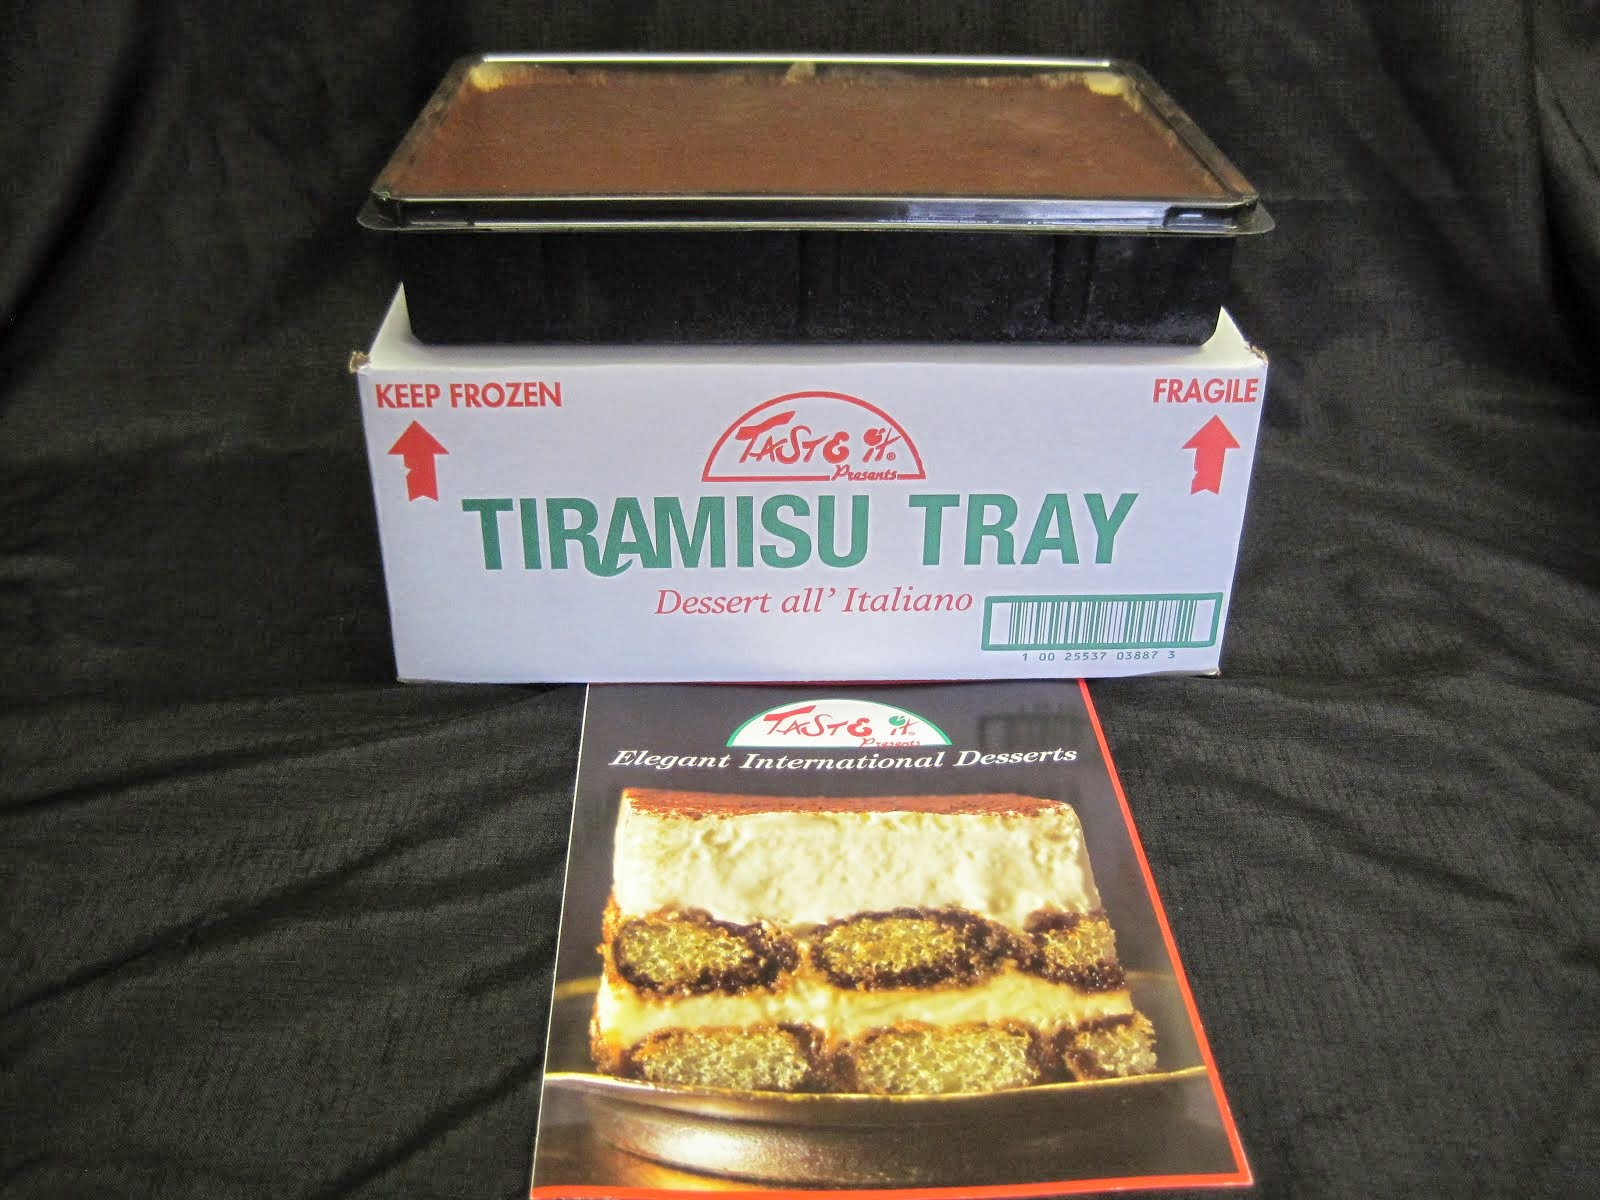 Tiramisu Dessert - item # 28200 and 28201 for single tray